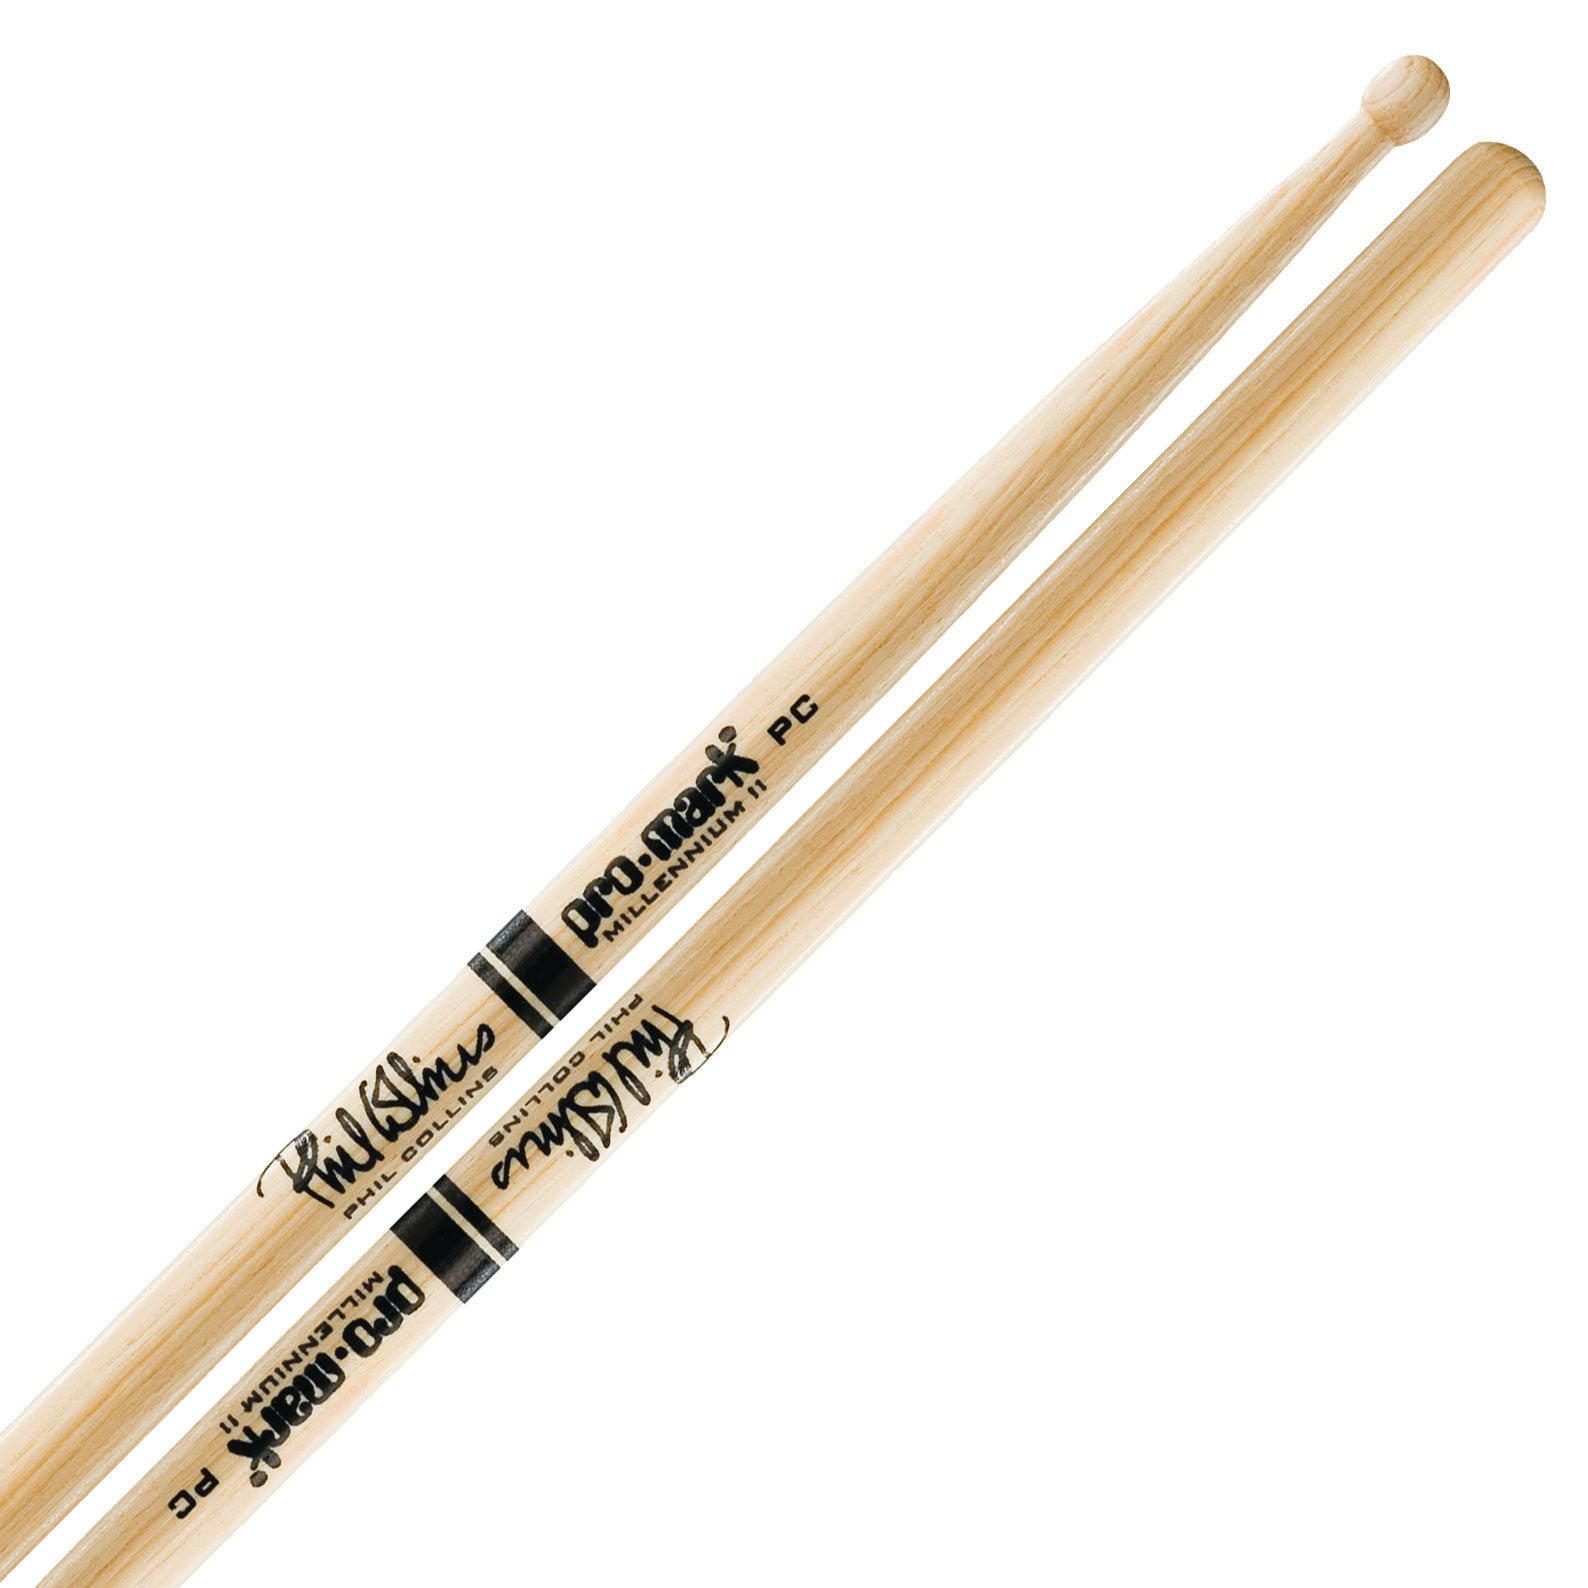 Promark Phil Collins Signature Drumsticks